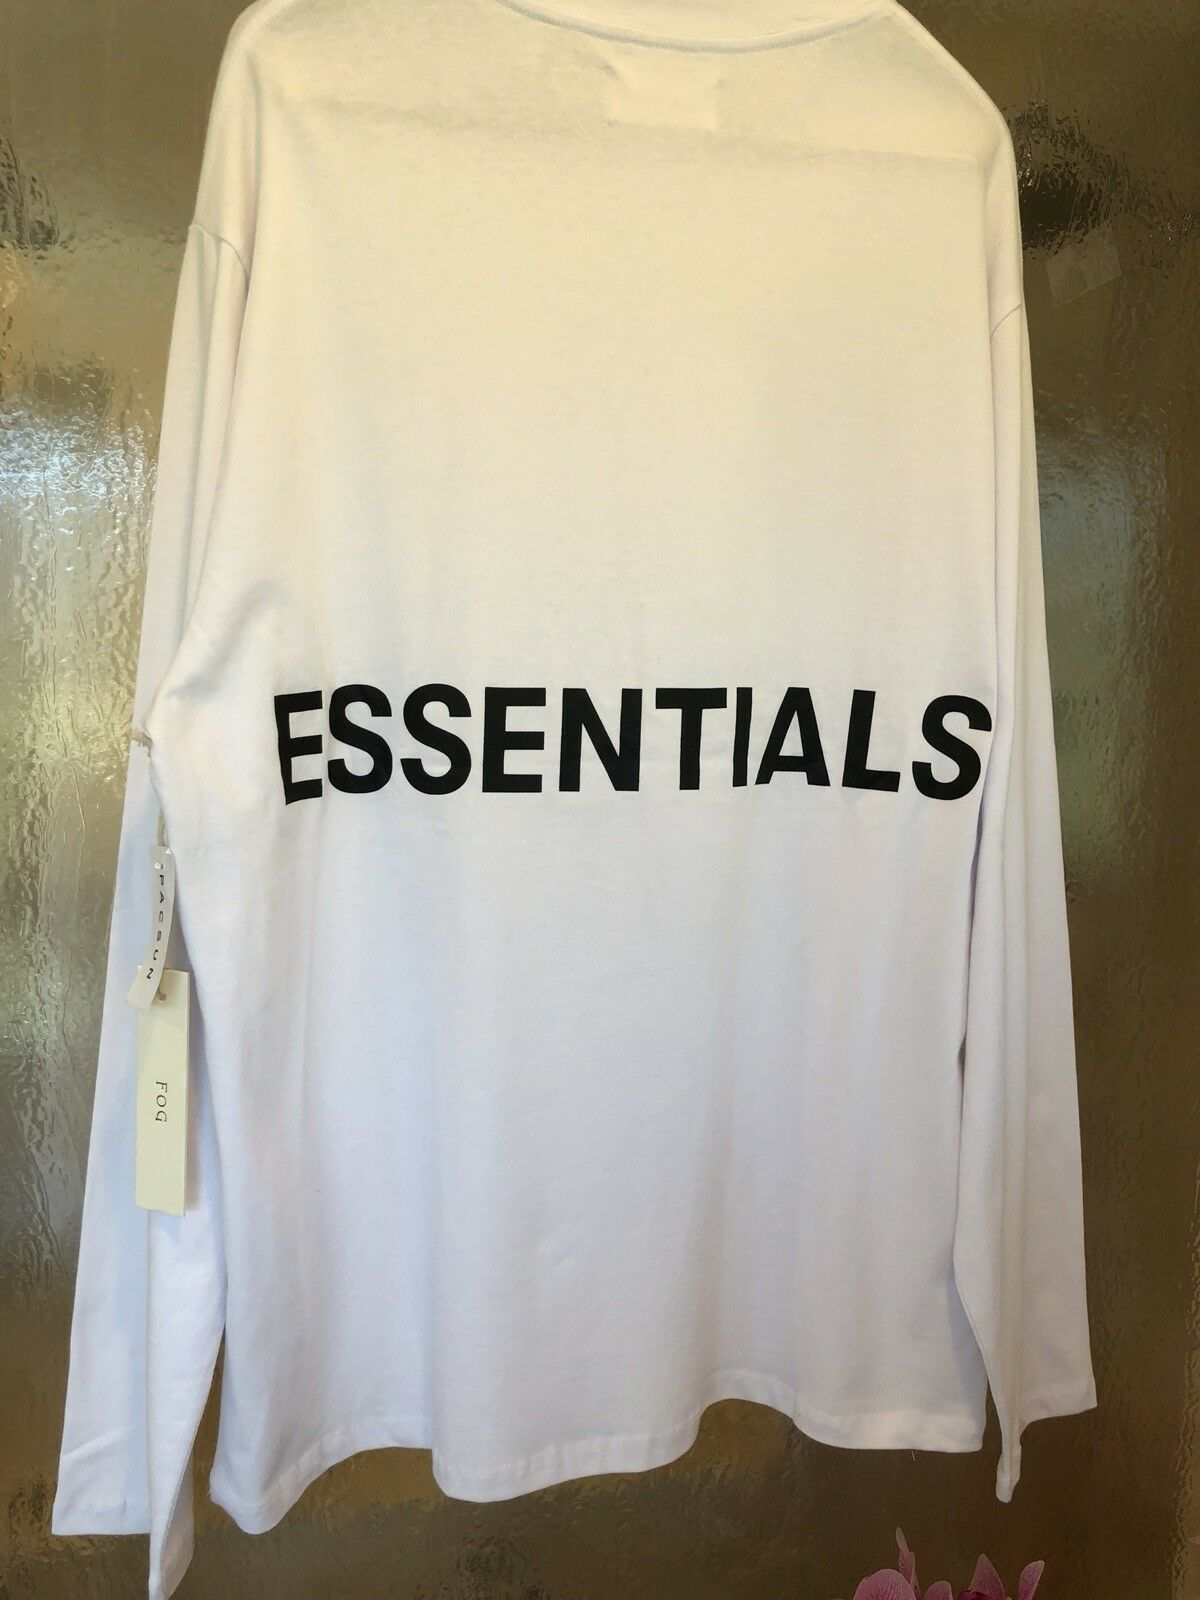 FOG-FEAR OF GOD X PACSUN ESSENTIALS BOXY GRAPHIC WHITE LONG SLEEVE T-SHIRT